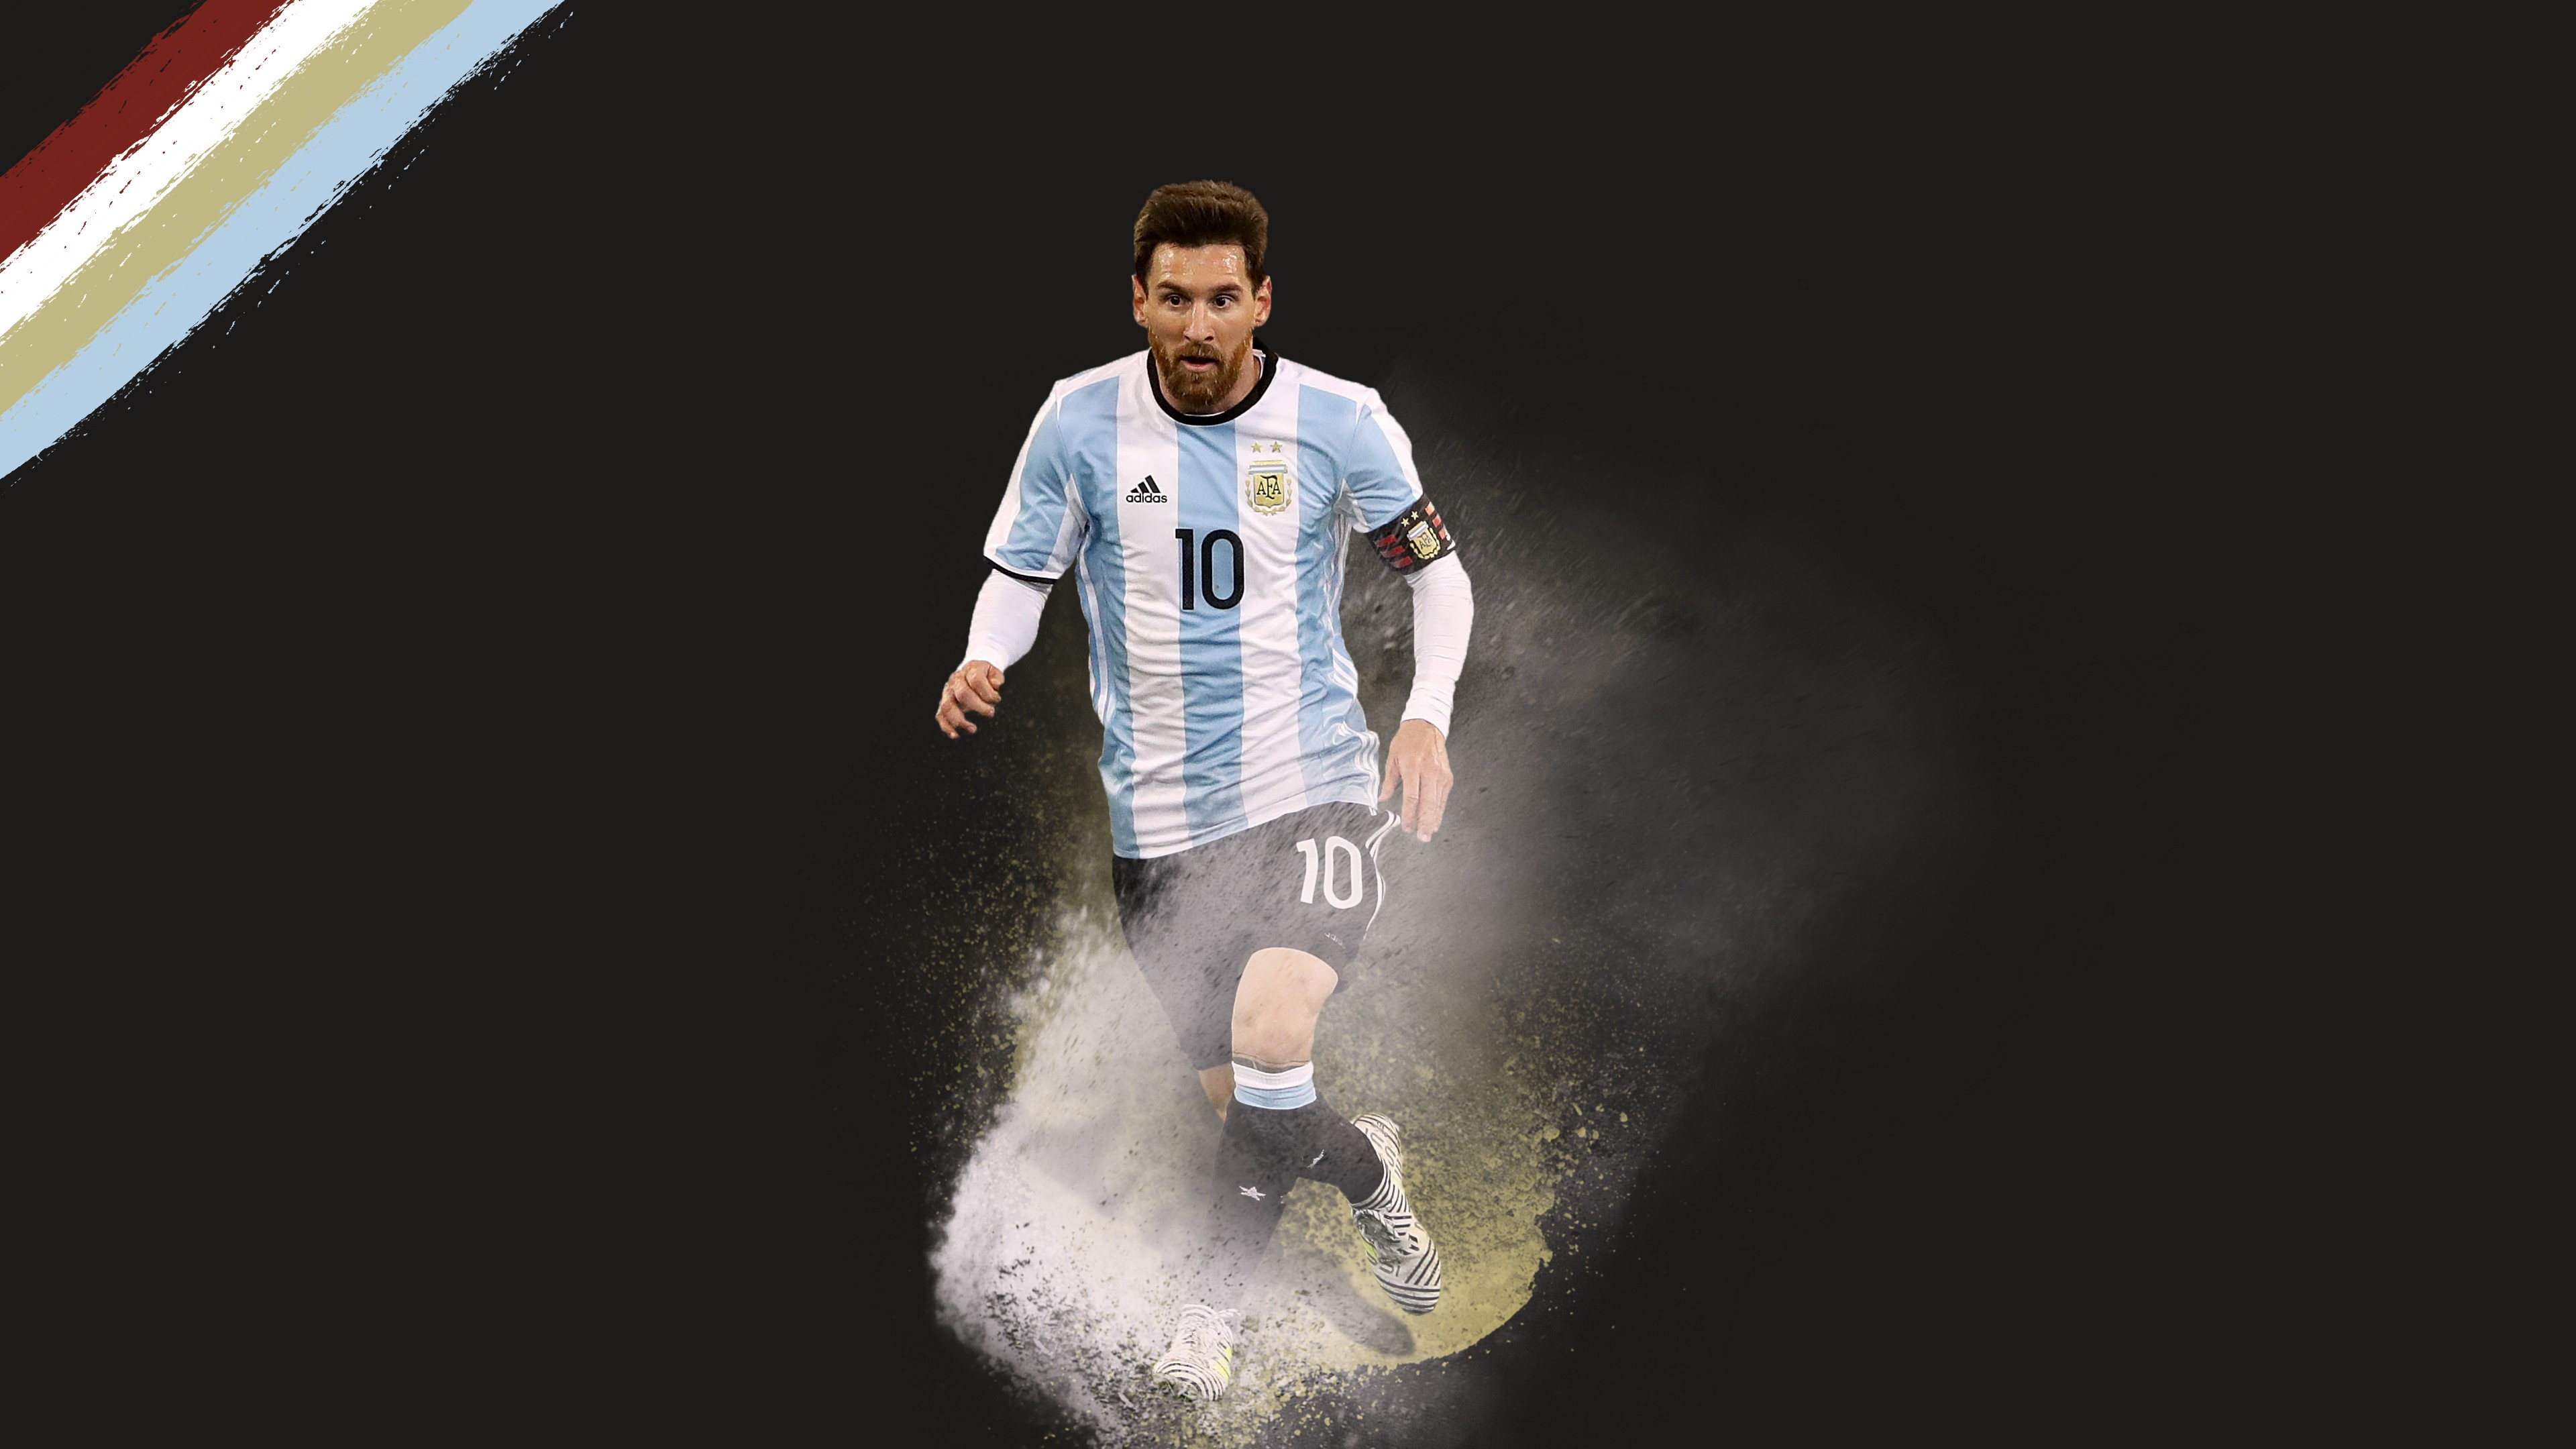 Free Download Wallpaper Lionel Messi Soccer Football 4k Sport 16301 3840x2160 For Your Desktop Mobile Tablet Explore 47 Messi 2020 4k Mobile Wallpapers Messi 2020 4k Mobile Wallpapers Messi 2020 Iphone Wallpapers 4k Mobile Wallpaper